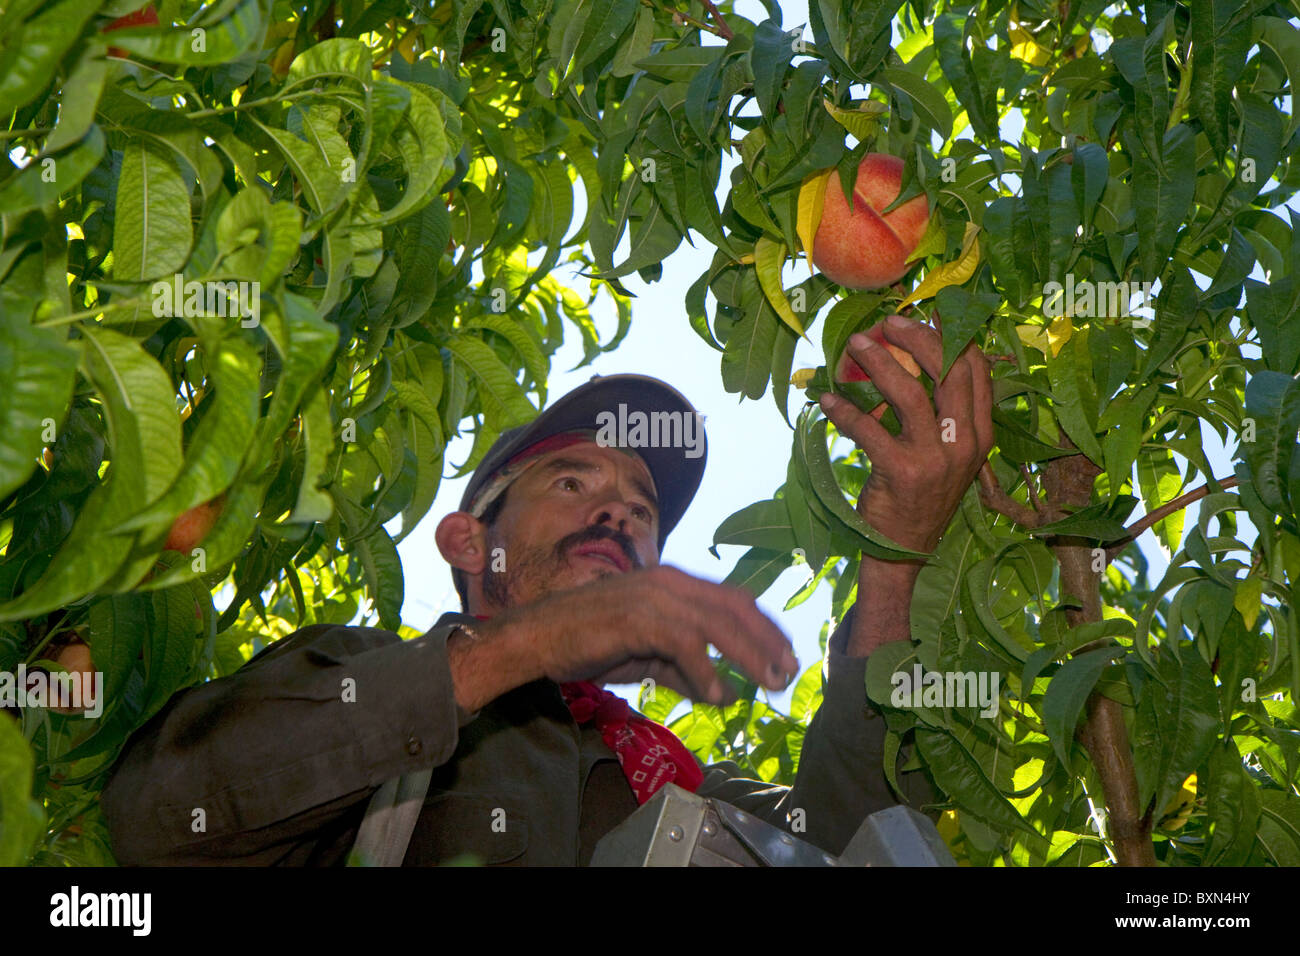 Migrant worker harvesting peaches in southwest Idaho, USA. - Stock Image